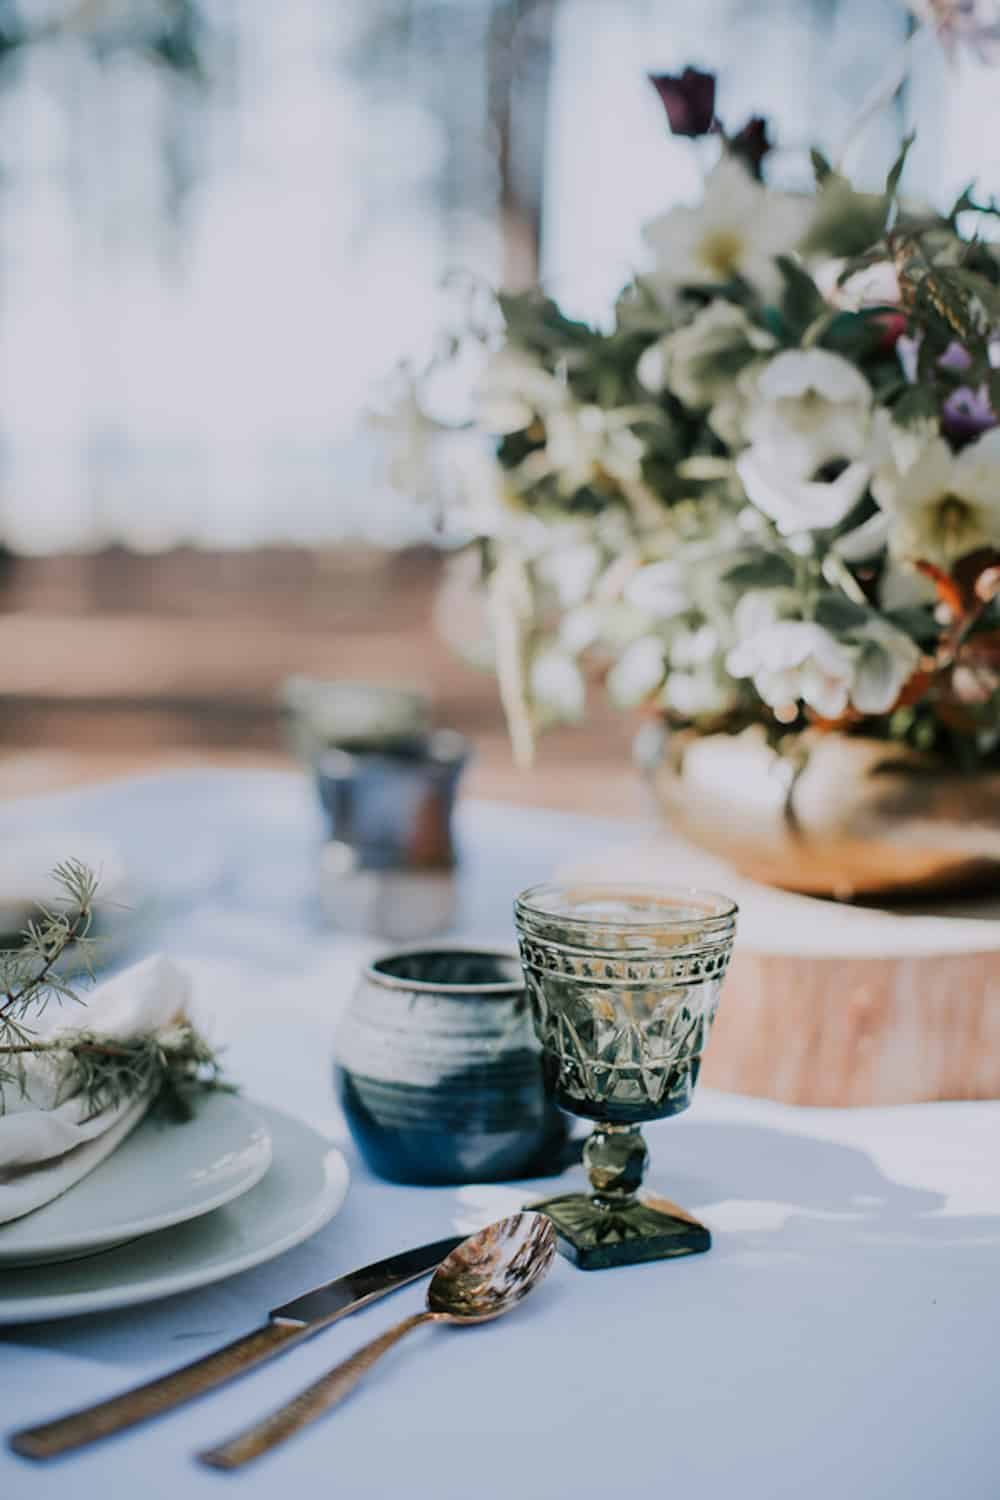 4 VafaPhotography_NorthernMichiganBohemianWeddingInspirationVafaPhoto339_low